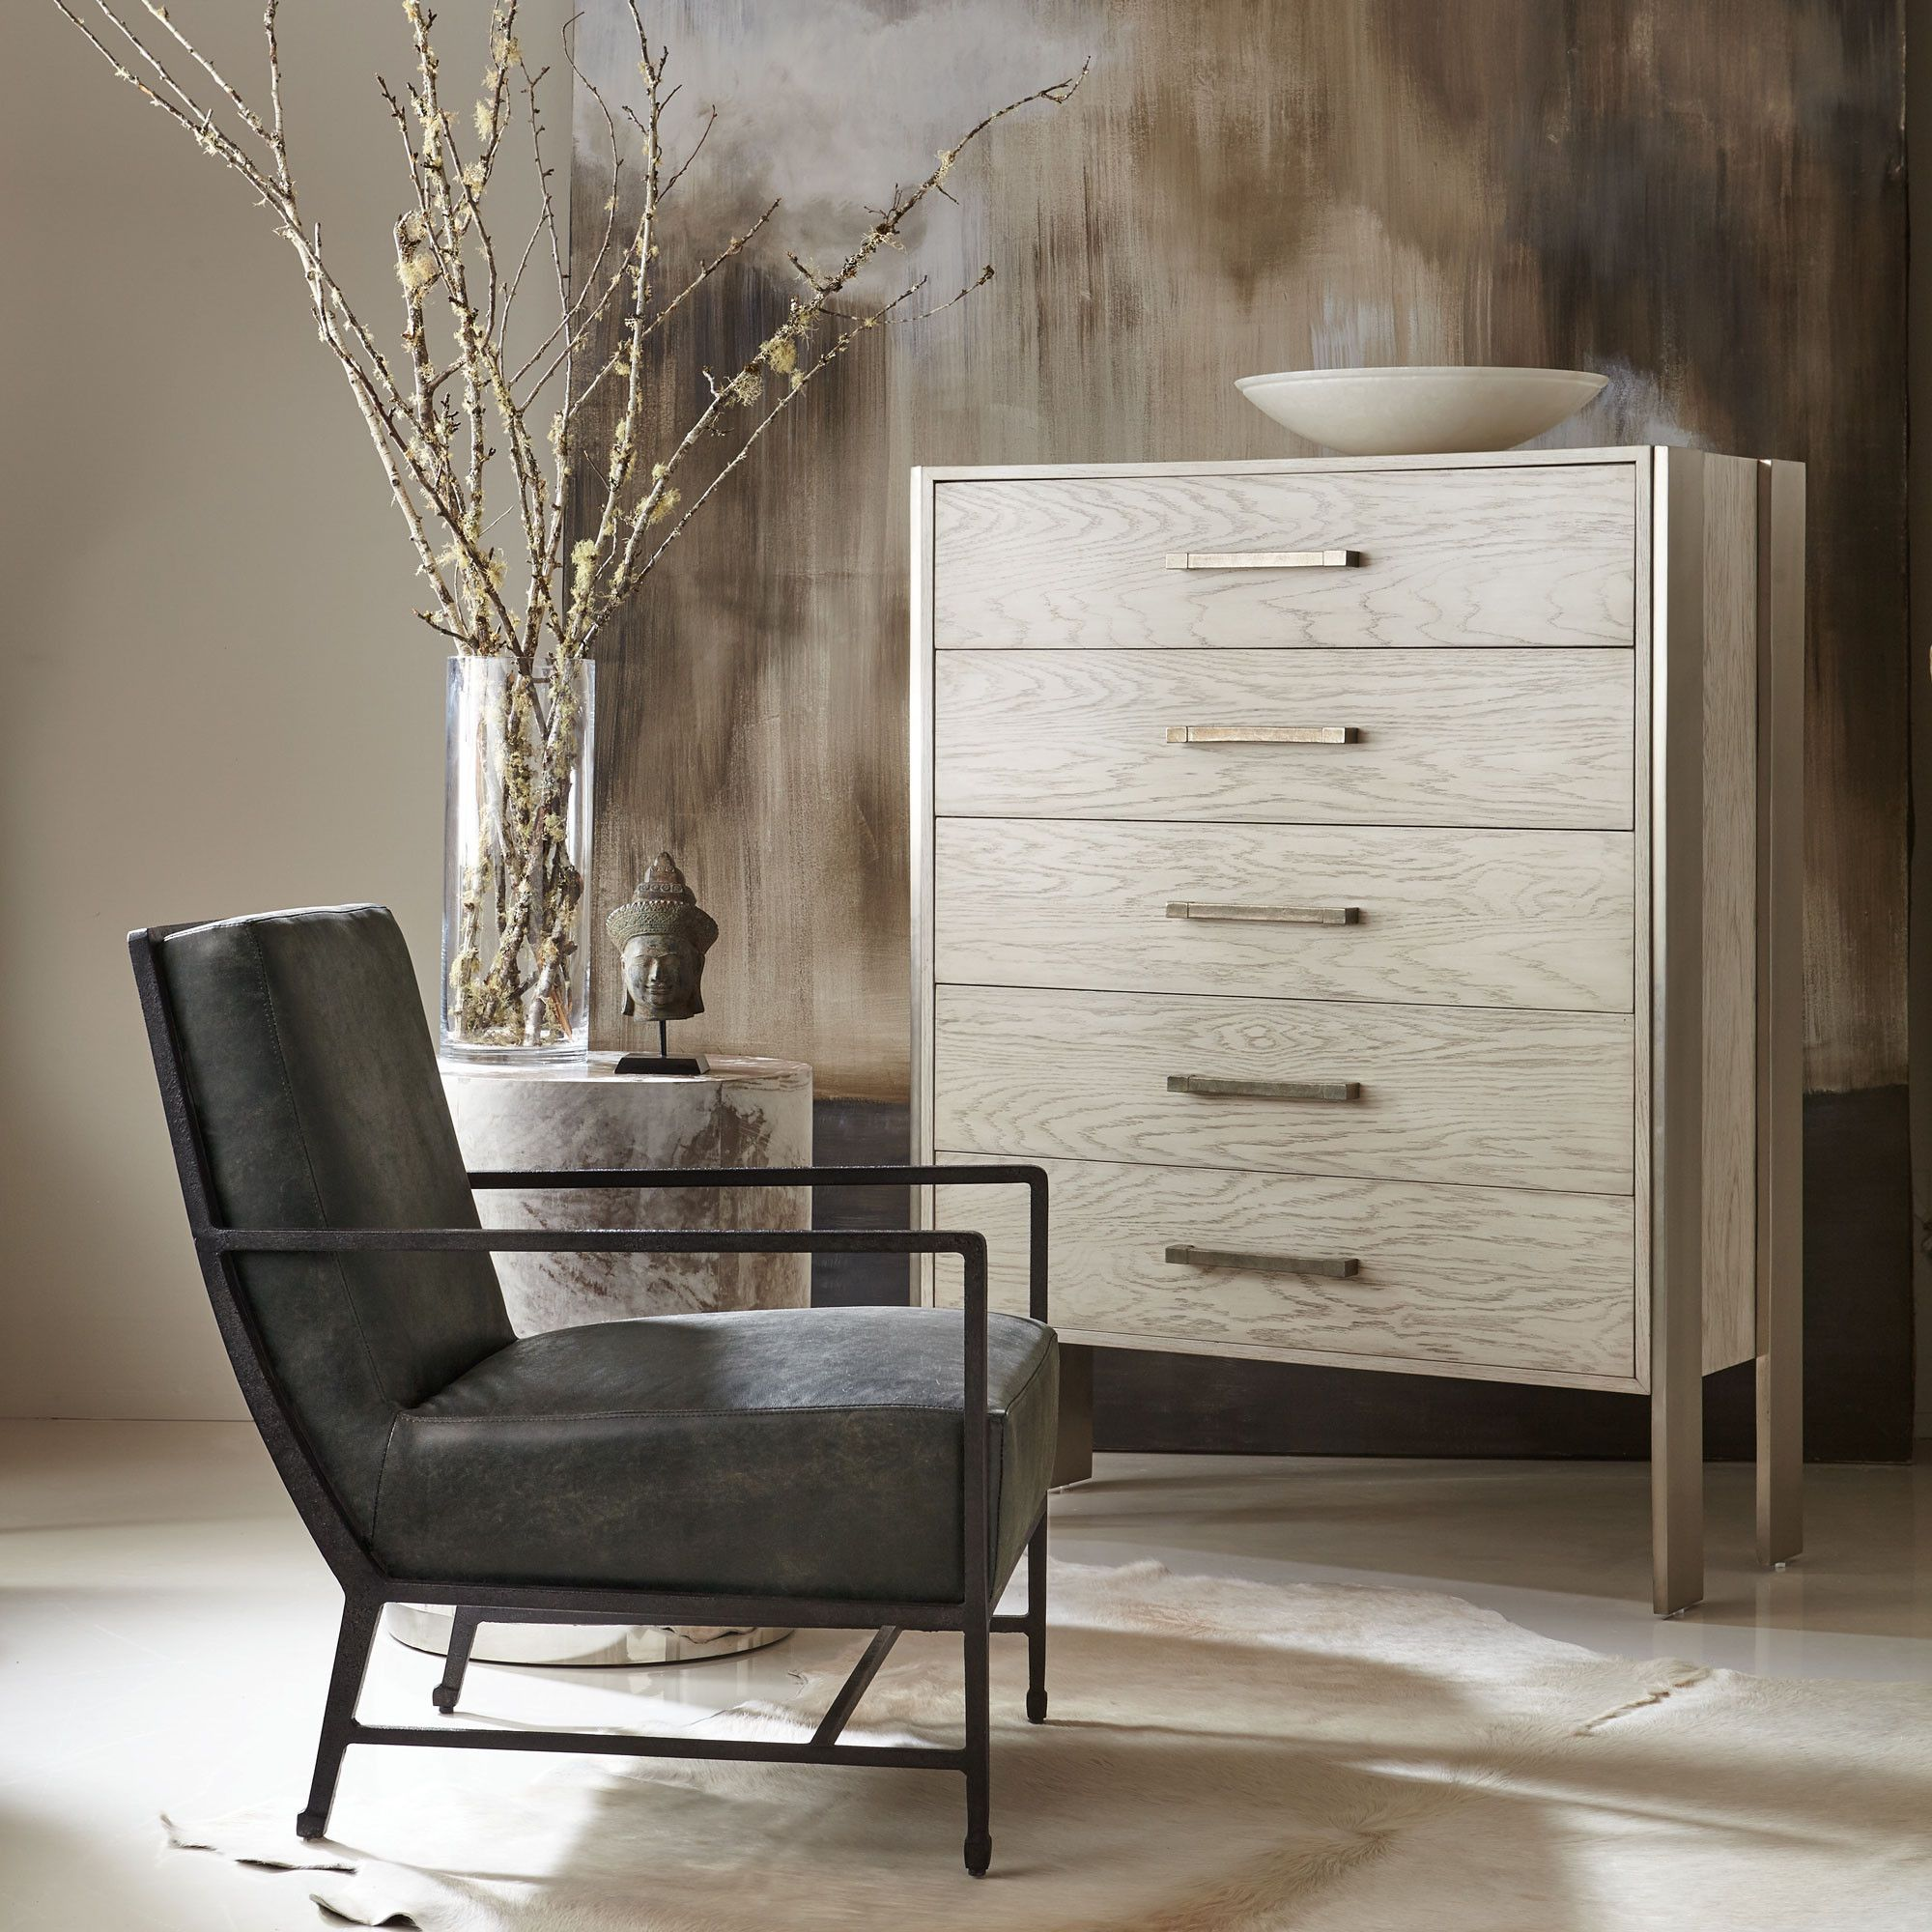 style new colorado rs chair leather furniture occ home bernhardt tbd furnishings